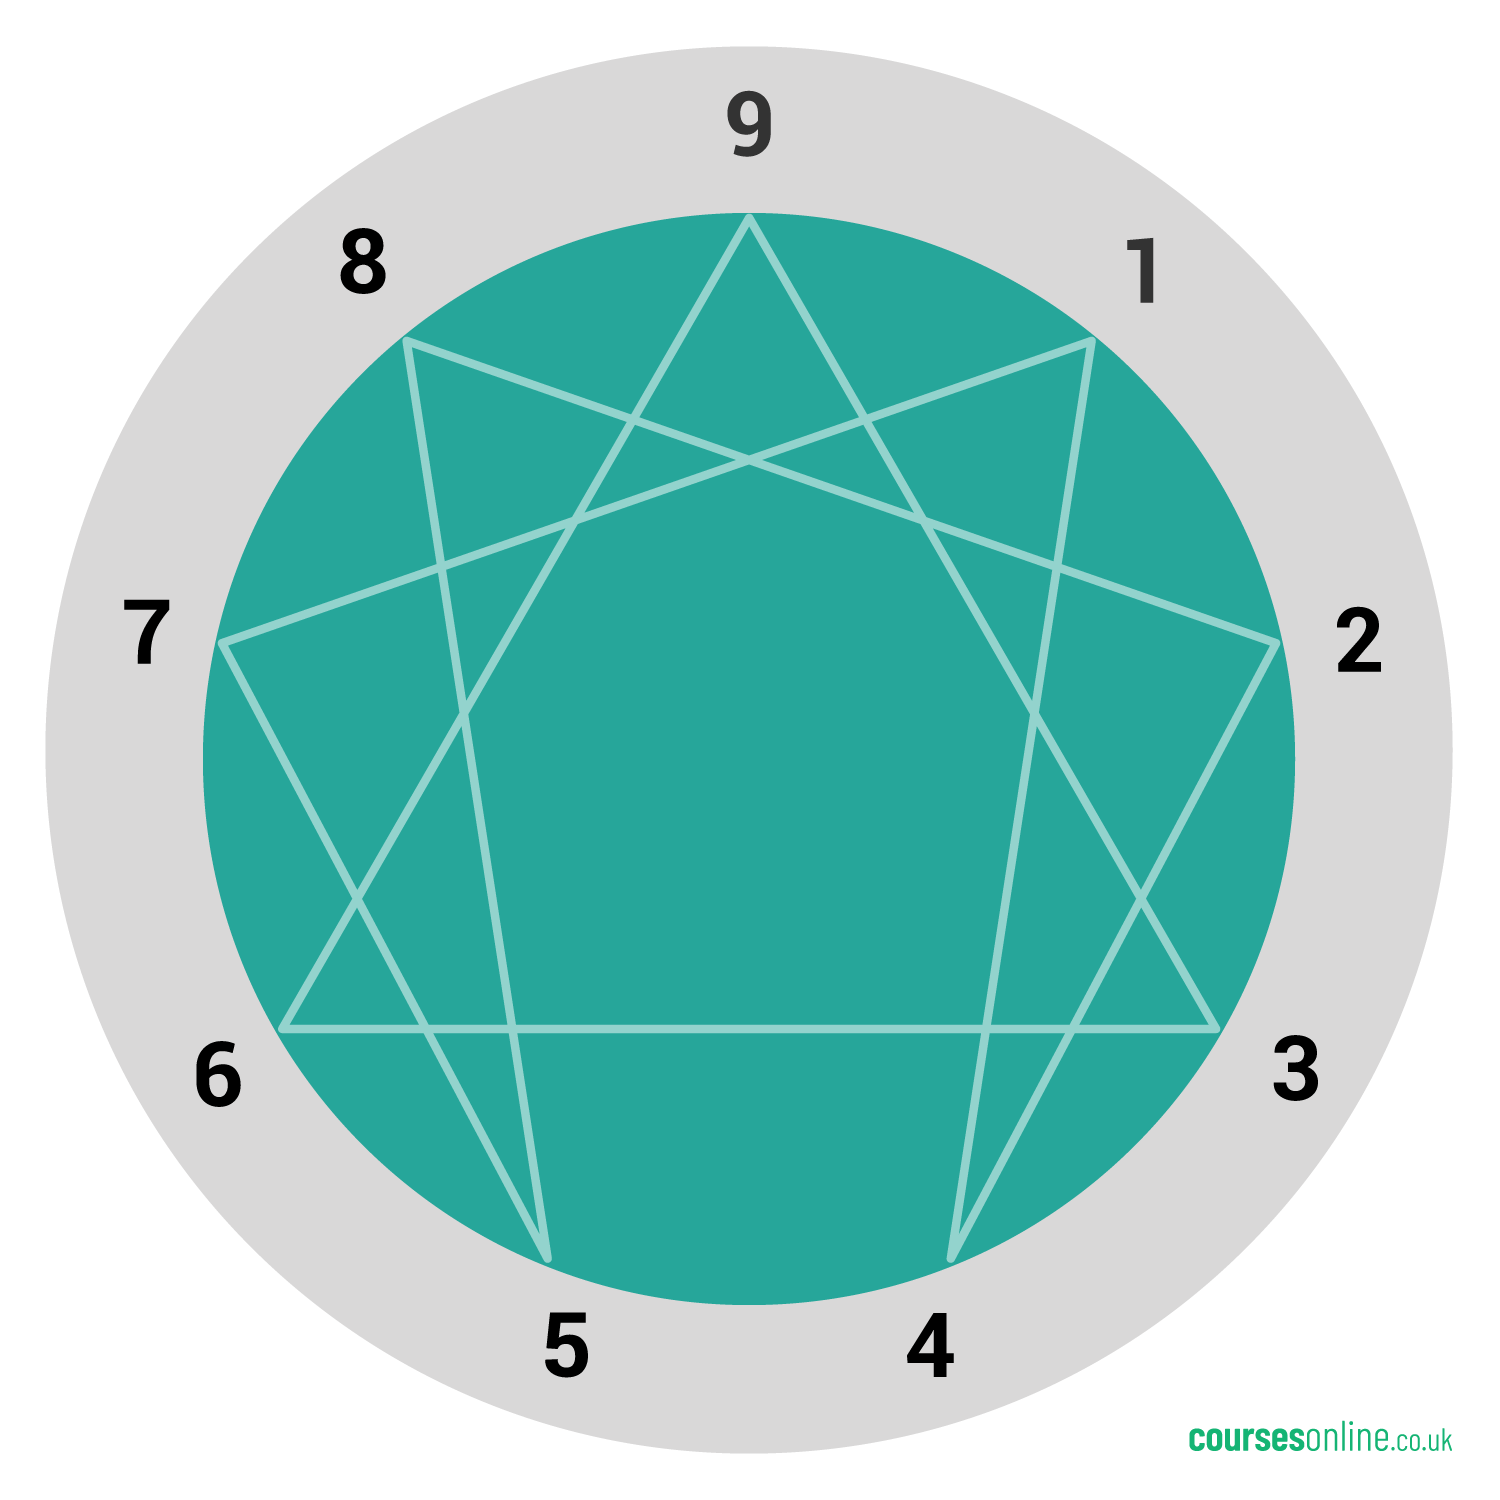 The Enneagram of Personality for Careers